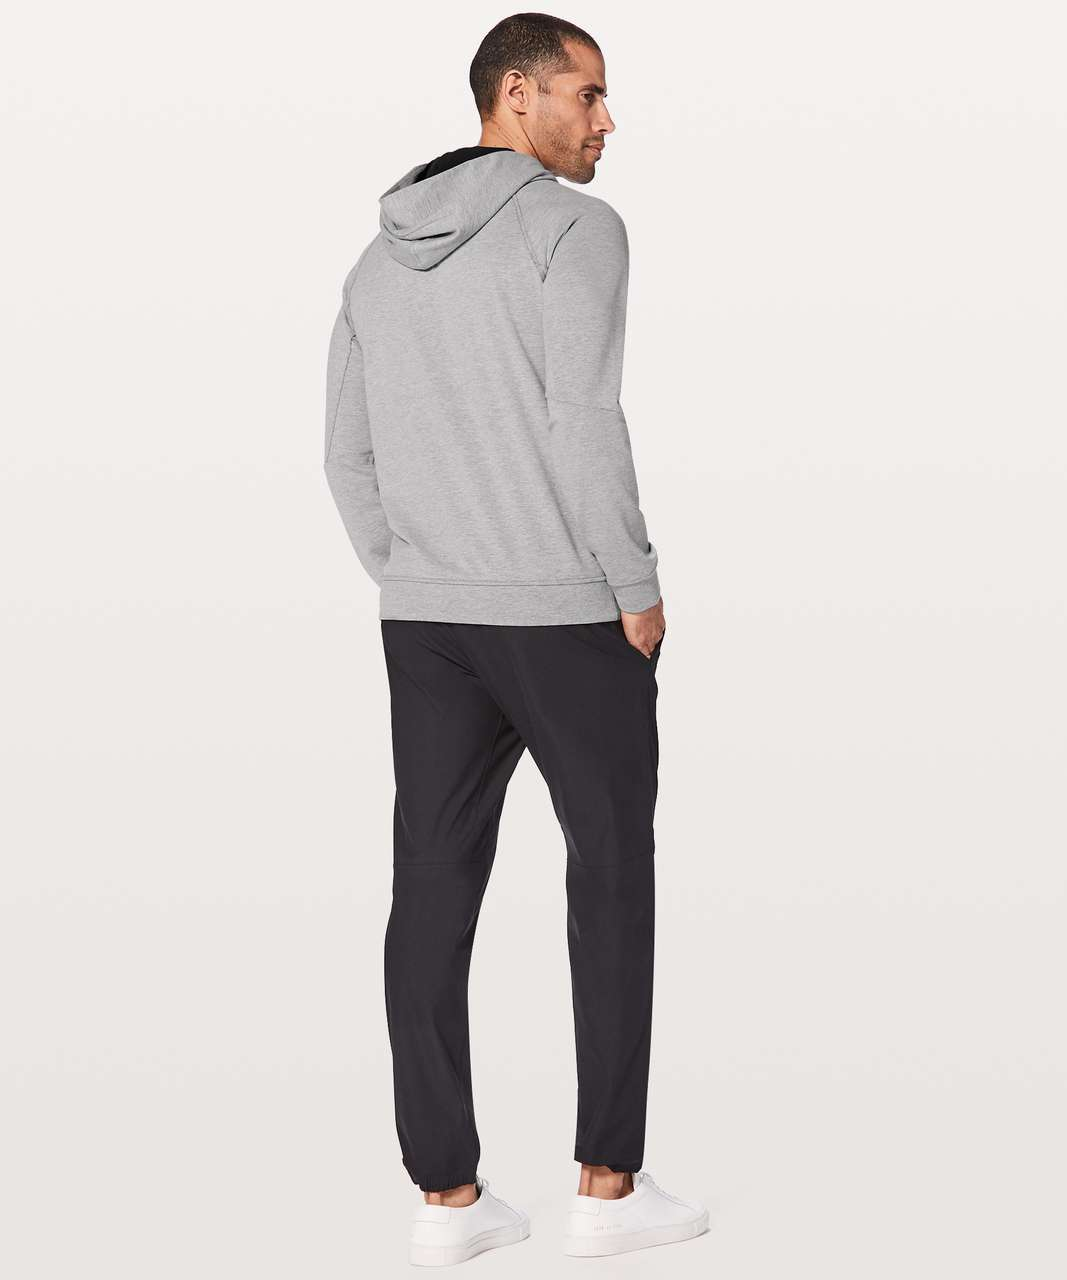 Lululemon City Sweat Pullover Hoodie - Heathered Medium Grey